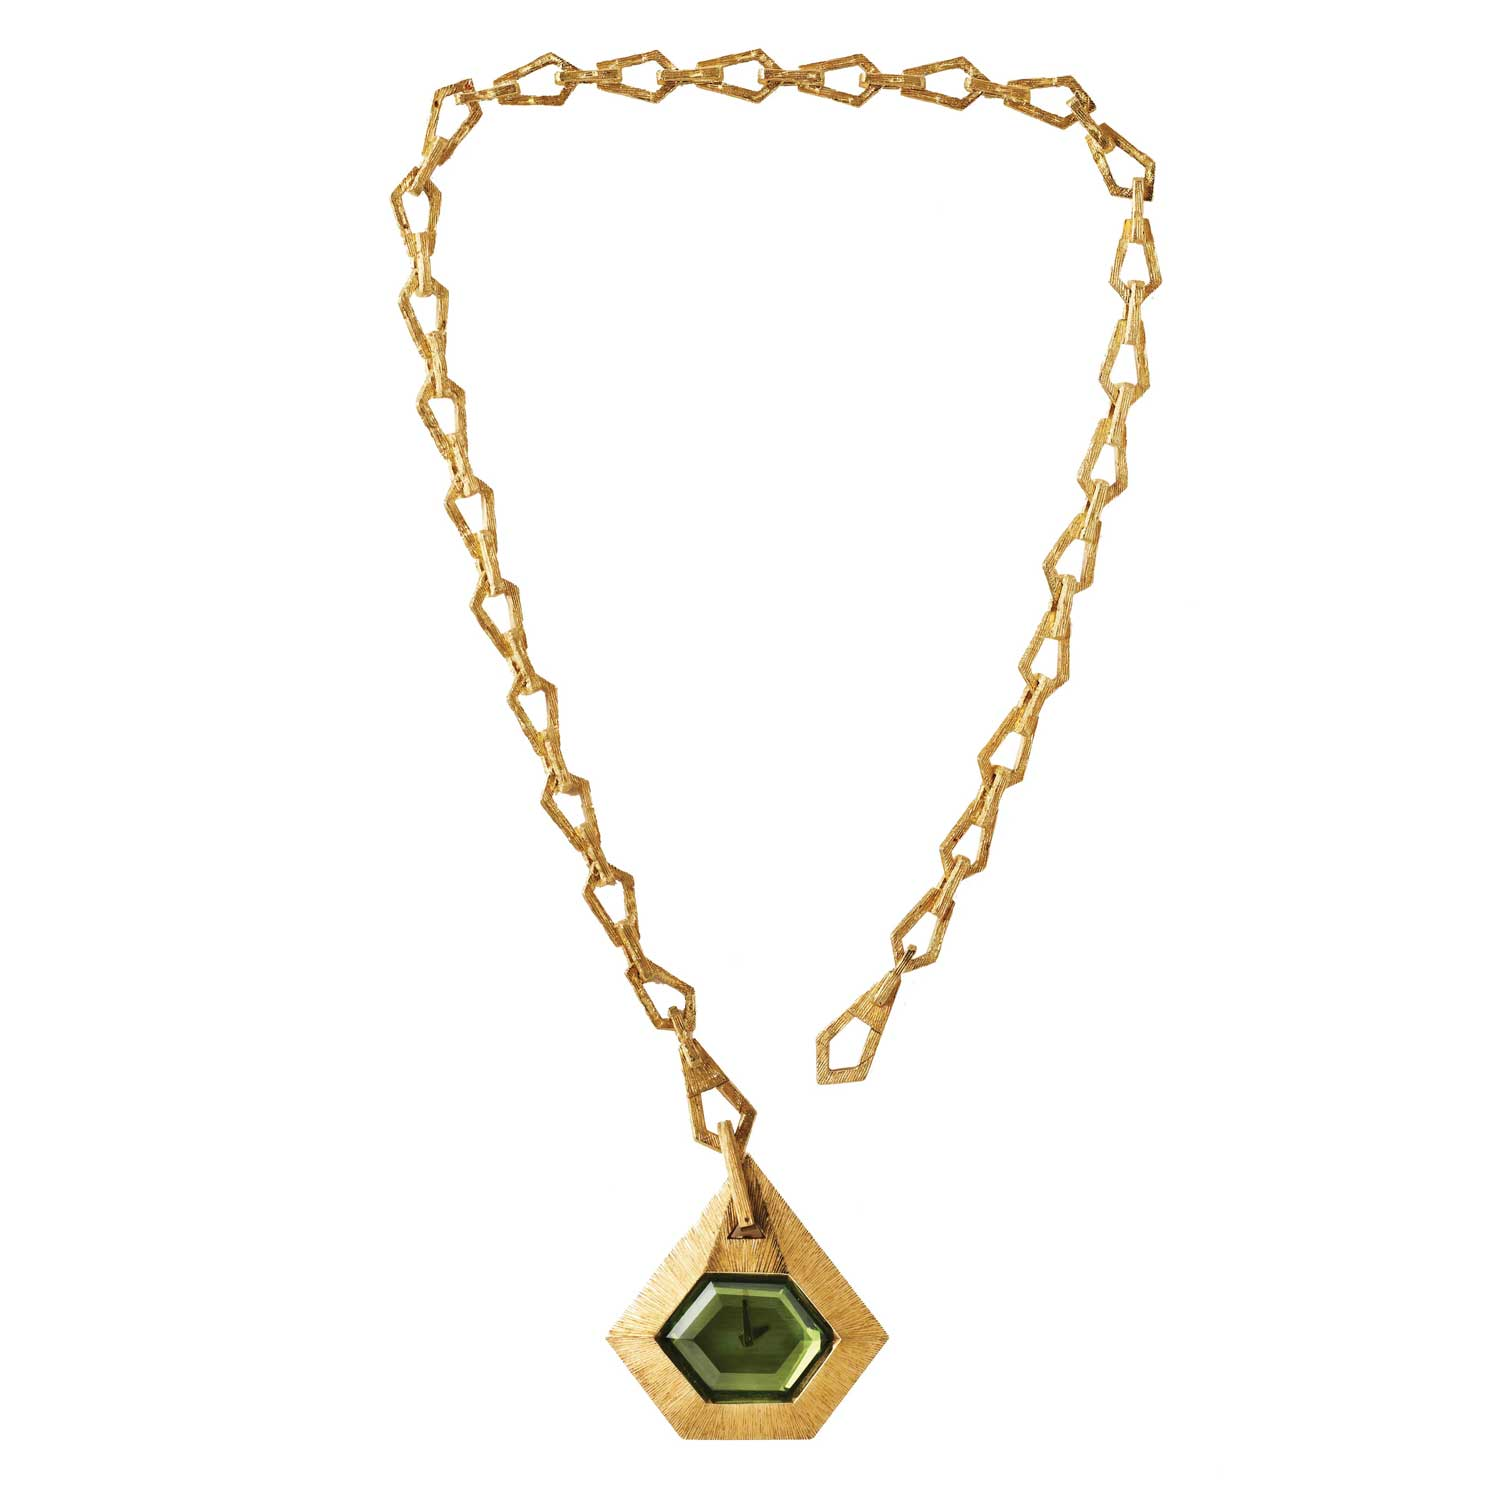 A substantial table-cut green peridot forms the centerpiece of Clover: a ladies' pendant watch that is an exercise in symmetry. The textured yellow gold case that frames the peridot could have been made with a brooch setting. Instead, it is suspended from large diamond-shaped textured gold links. The chain is articulated to sit as a pendant but could equally serve as a man's pocket watch